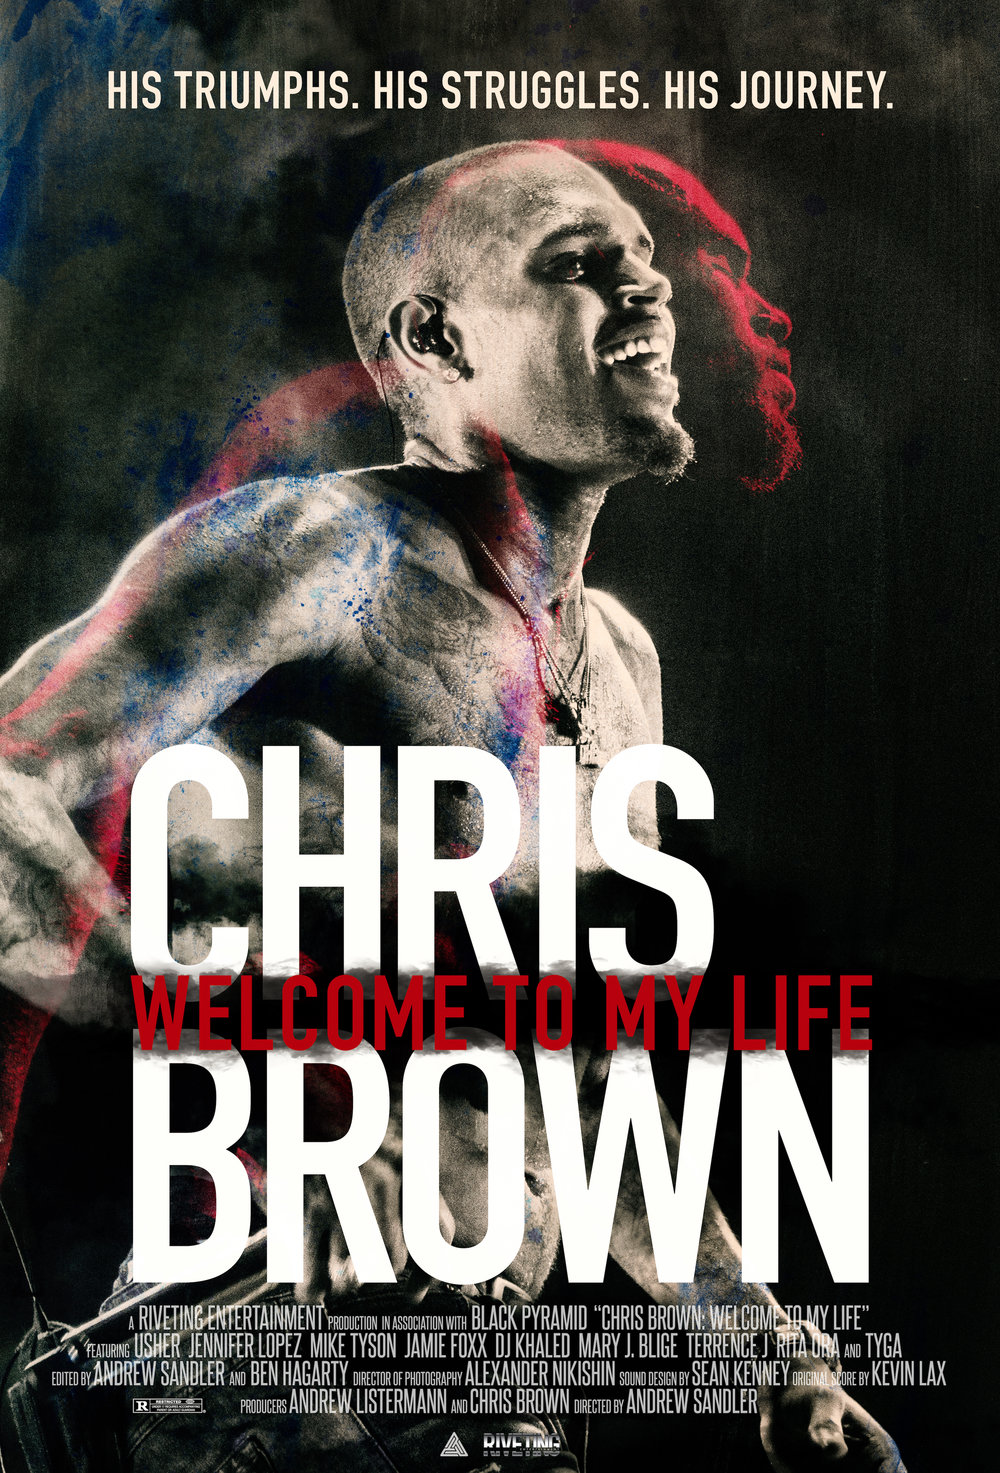 WELCOME TO MY LIFE - OFFICIAL CHRIS BROWN DOCUMENTARY